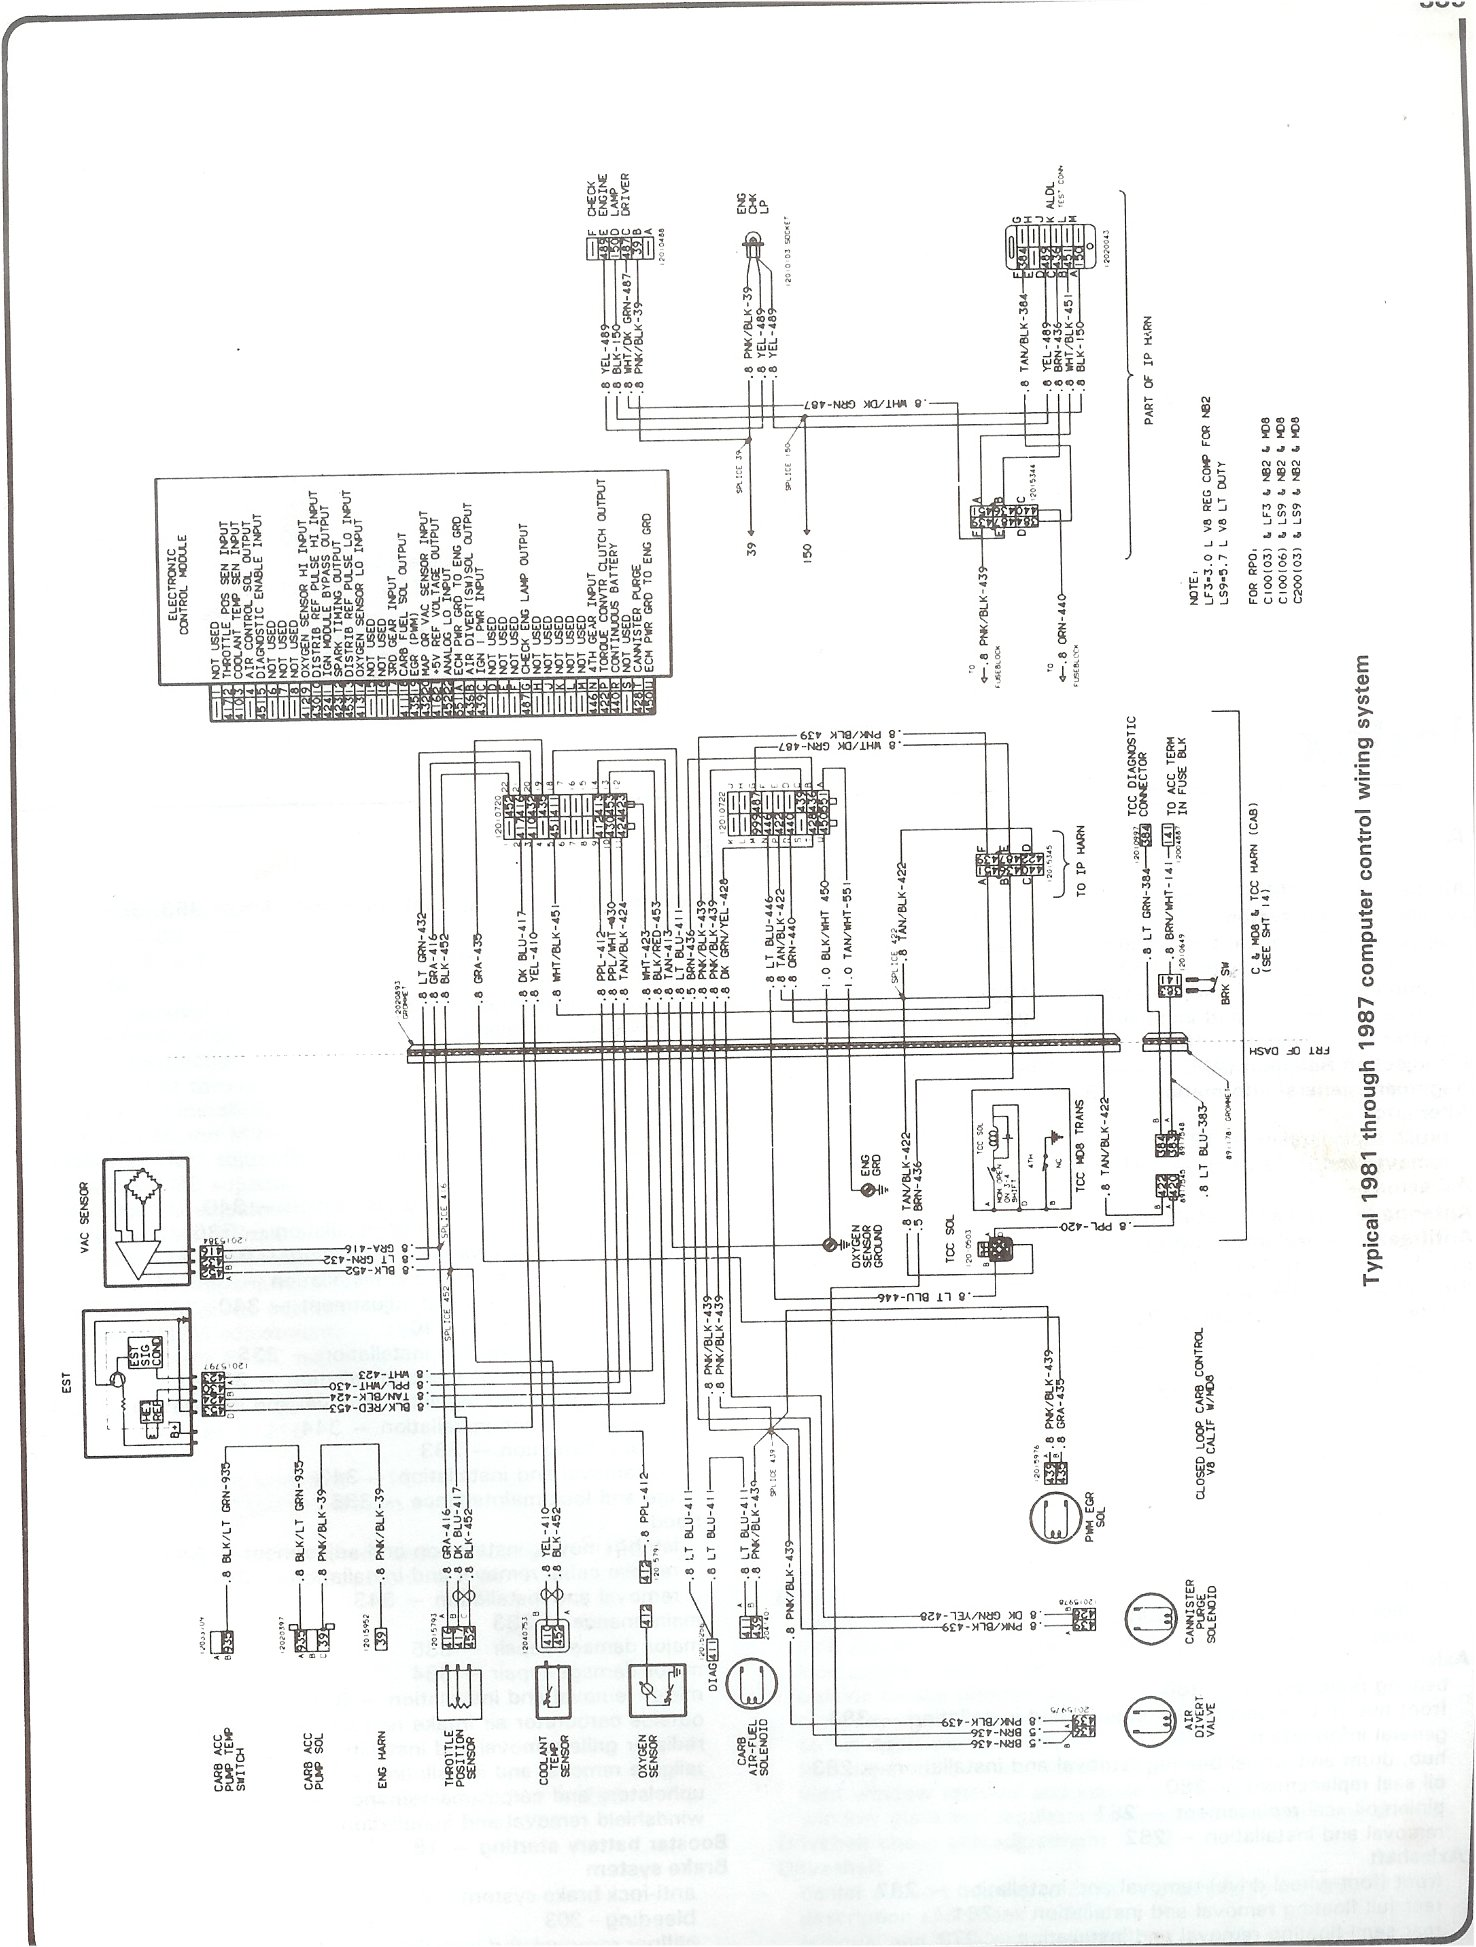 81 87_computer_control_wiring complete 73 87 wiring diagrams 1990 suburban instrument cluster wiring diagram at crackthecode.co